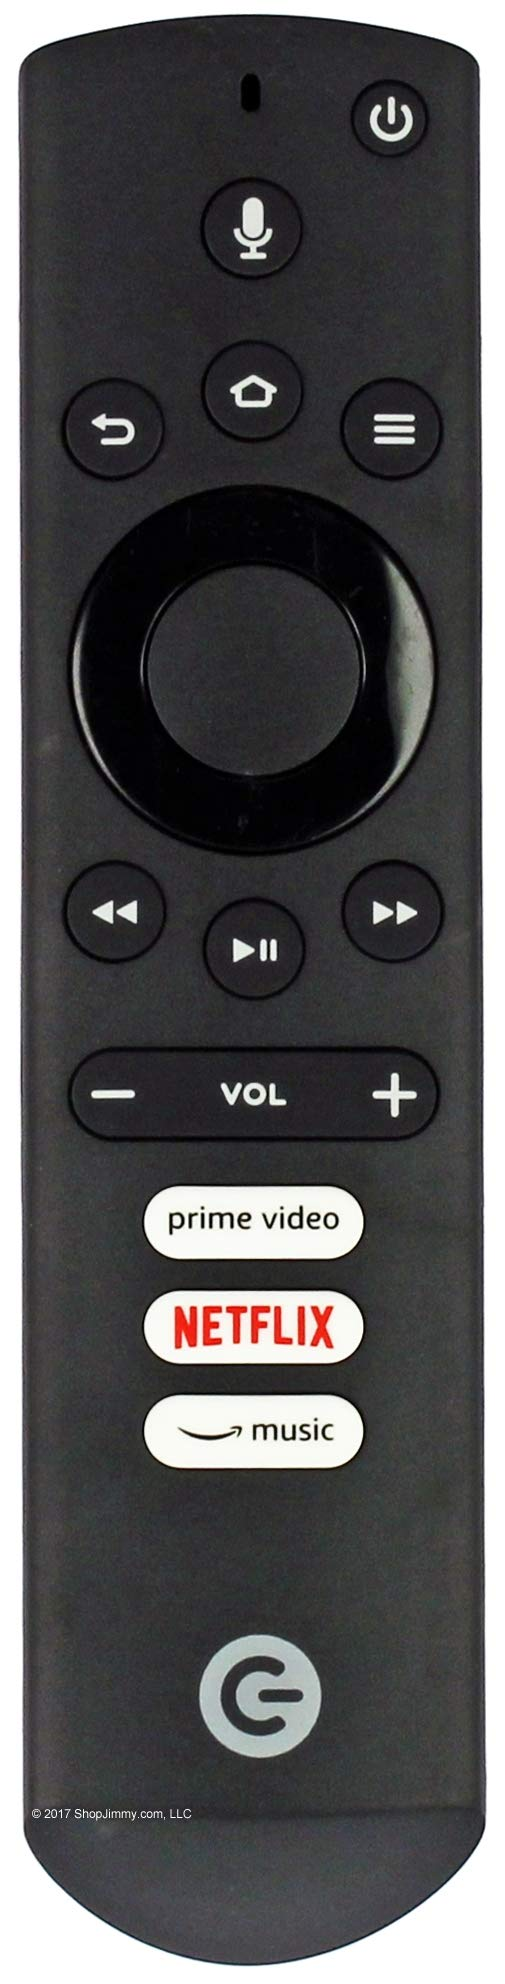 Element/Westinghouse Replacement Voice Remote with Alexa (Open Bag)